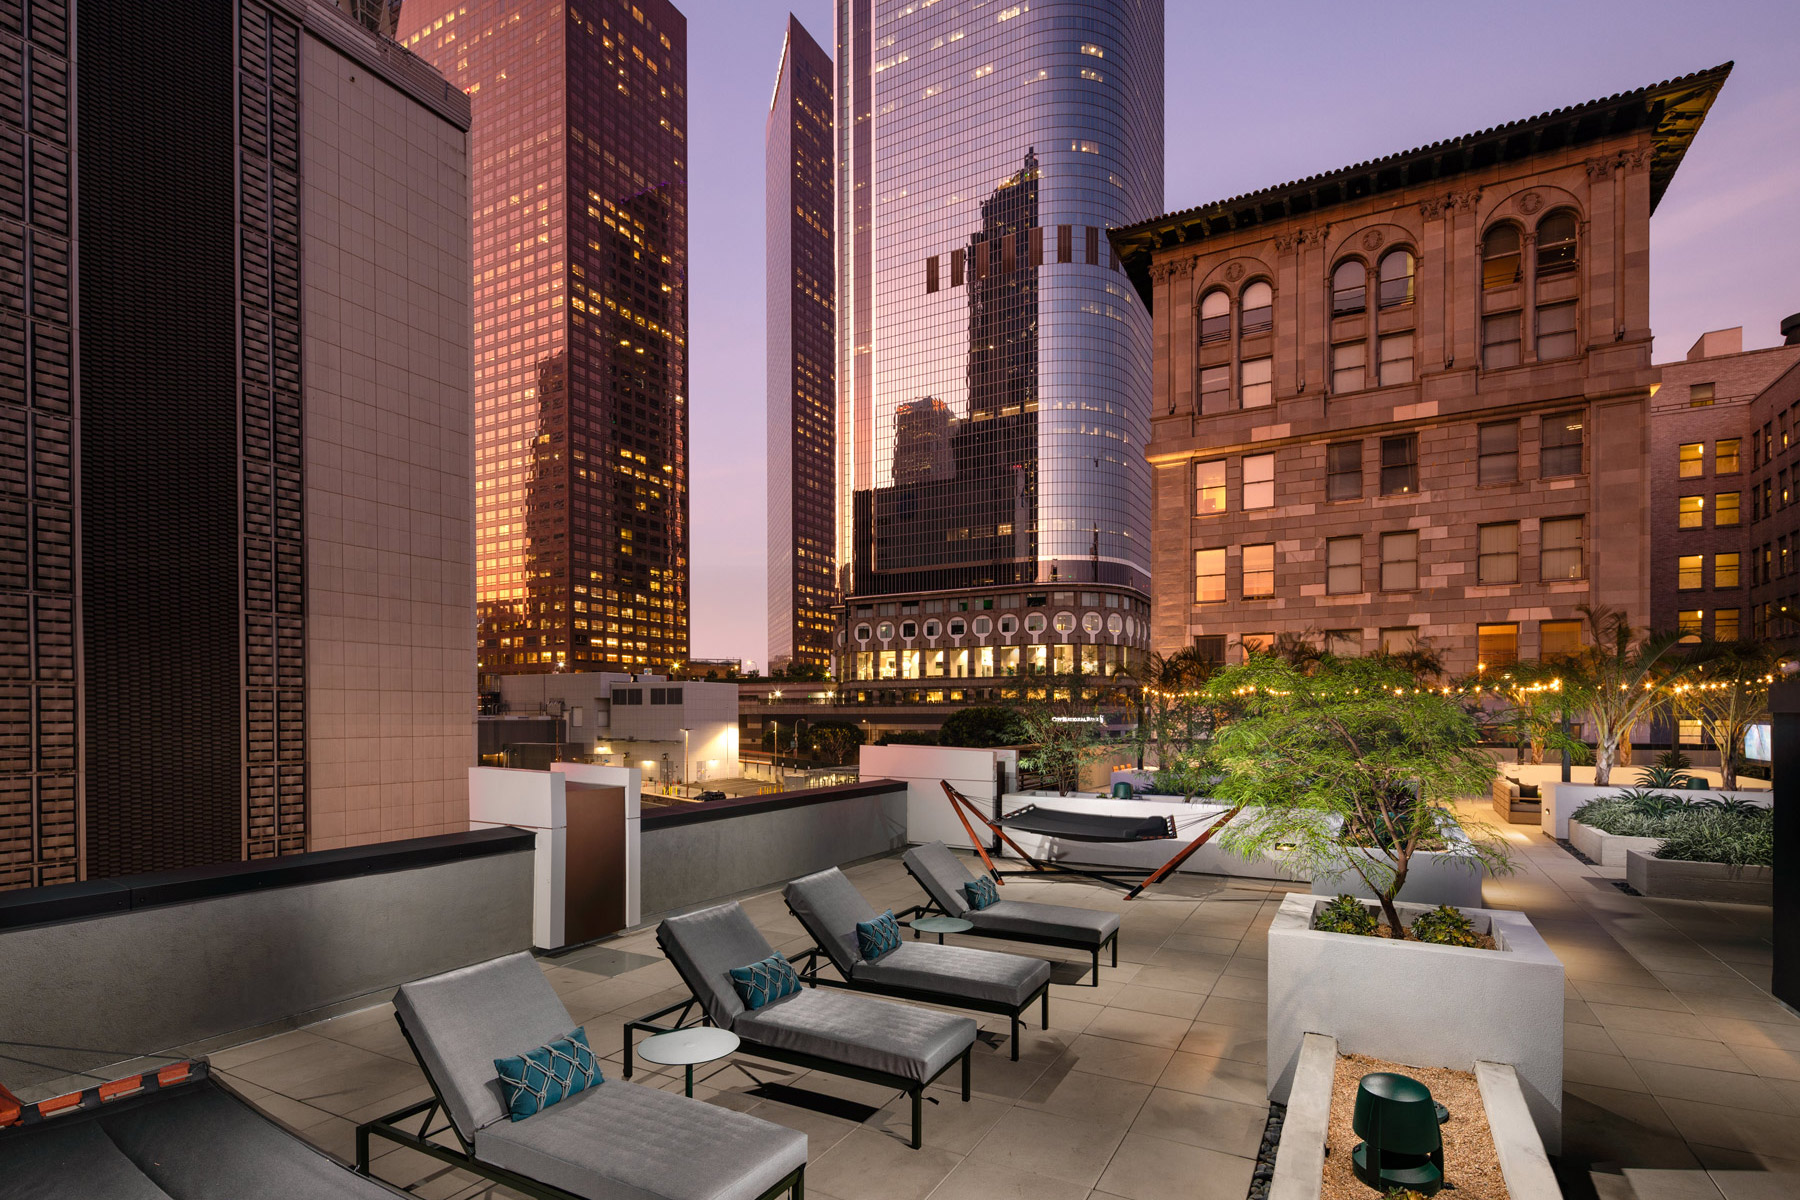 Trademark Apartments outdoor space with view of skyscrapers in Downtown Los Angeles